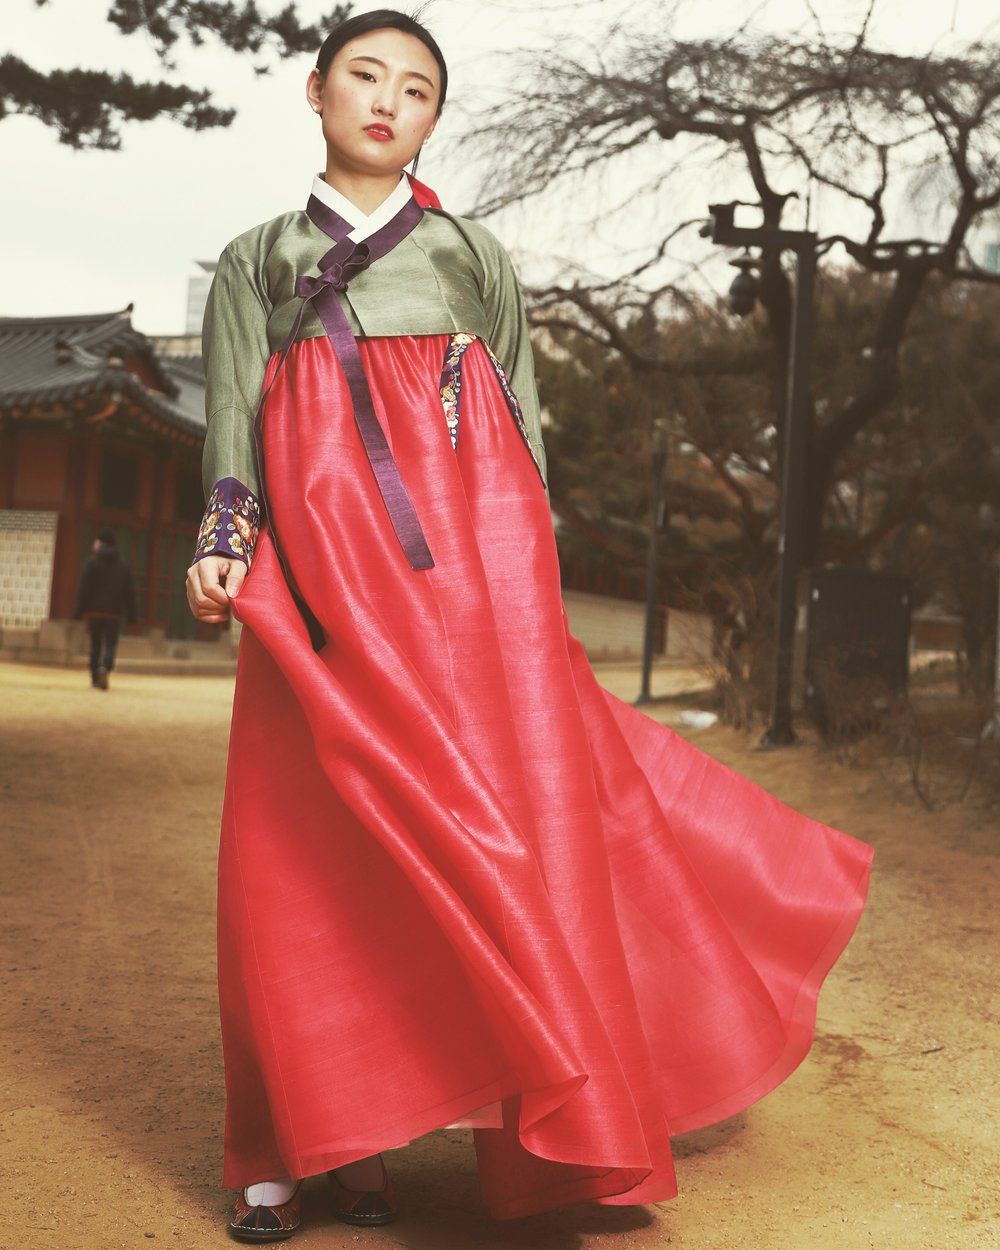 A proper hanbok has some volume from an inner, padded skirt but still hangs down naturally. A properly made hanbok should have volume, but still flow when the wind blows. This is Korea; this is the subtle difference that the real, proper thing allows, and which is often lost on tourism paths traveled by thousands of people a day. If you can't even find a proper hanbok on your trip what else are you missing?